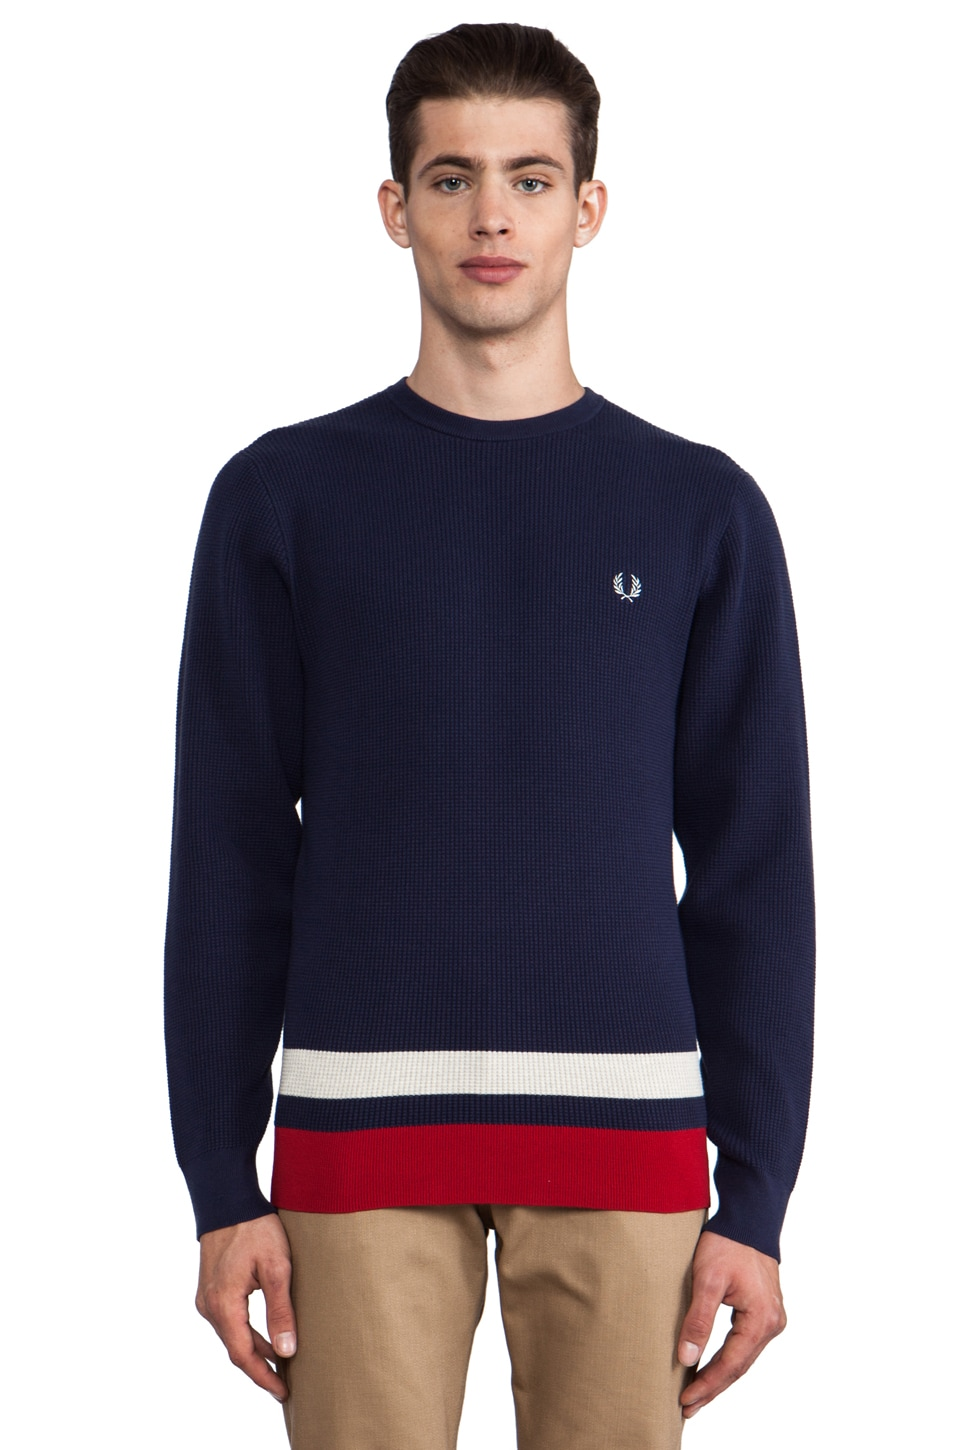 Fred Perry Pullover Sweater in Carbon Blue/Oatmeal/Blood